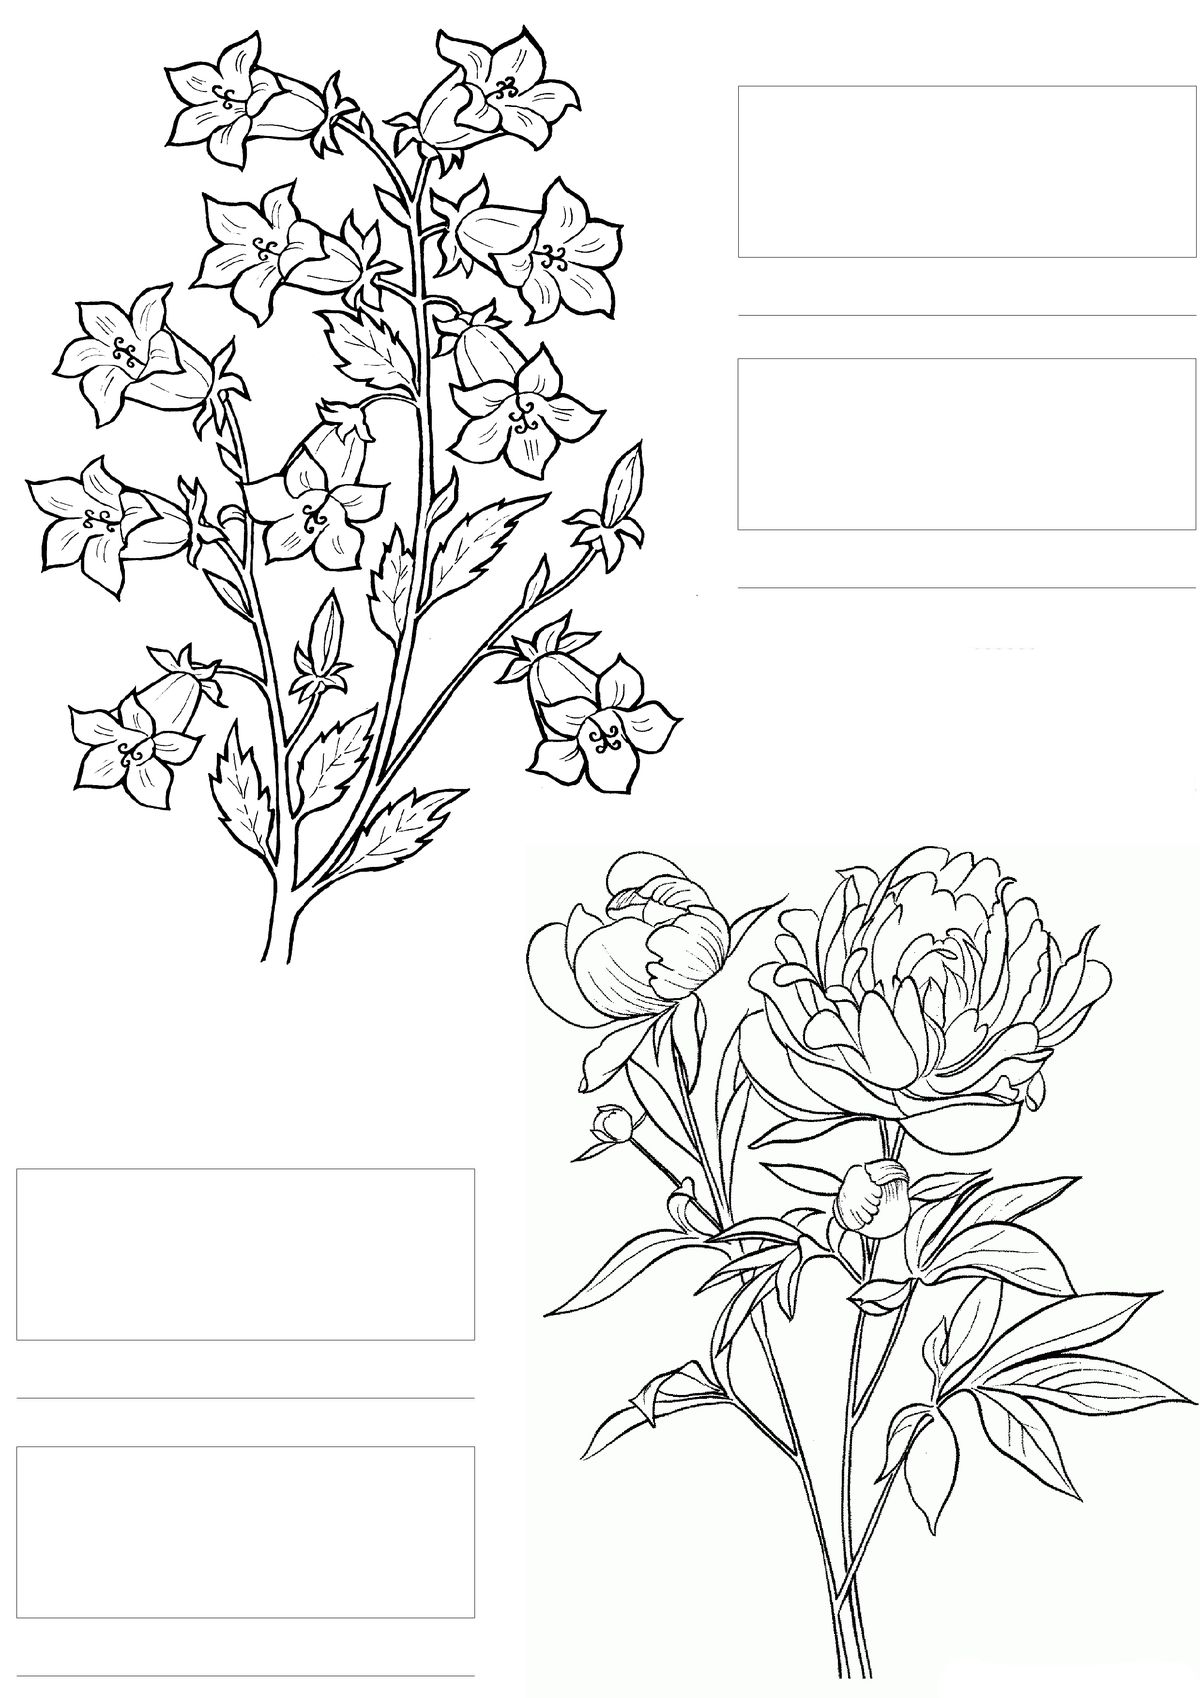 Spectrum Noir Blank Color Chart Printable Sketch Coloring Page